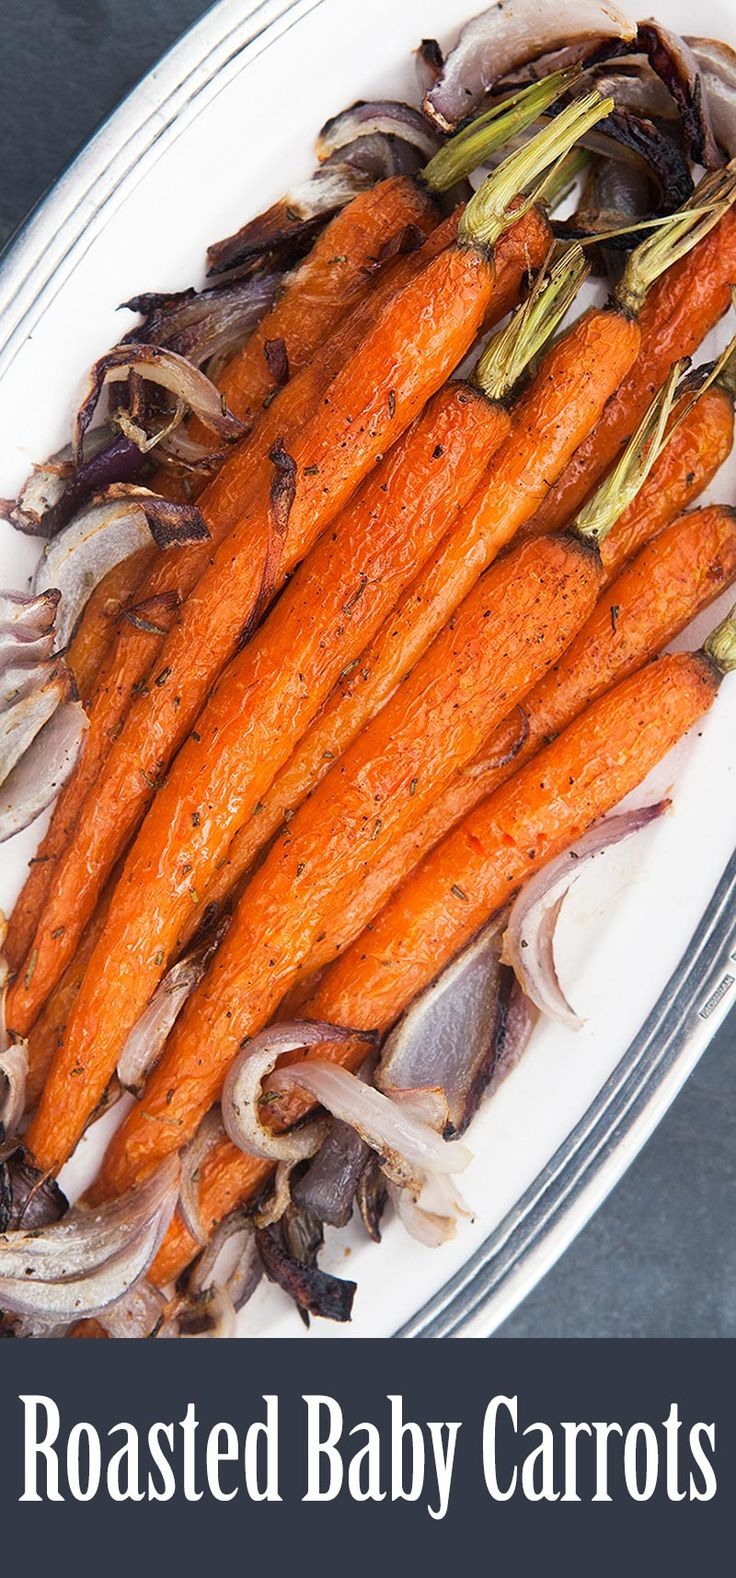 17 Best ideas about Roasted Baby Carrots on Pinterest ...